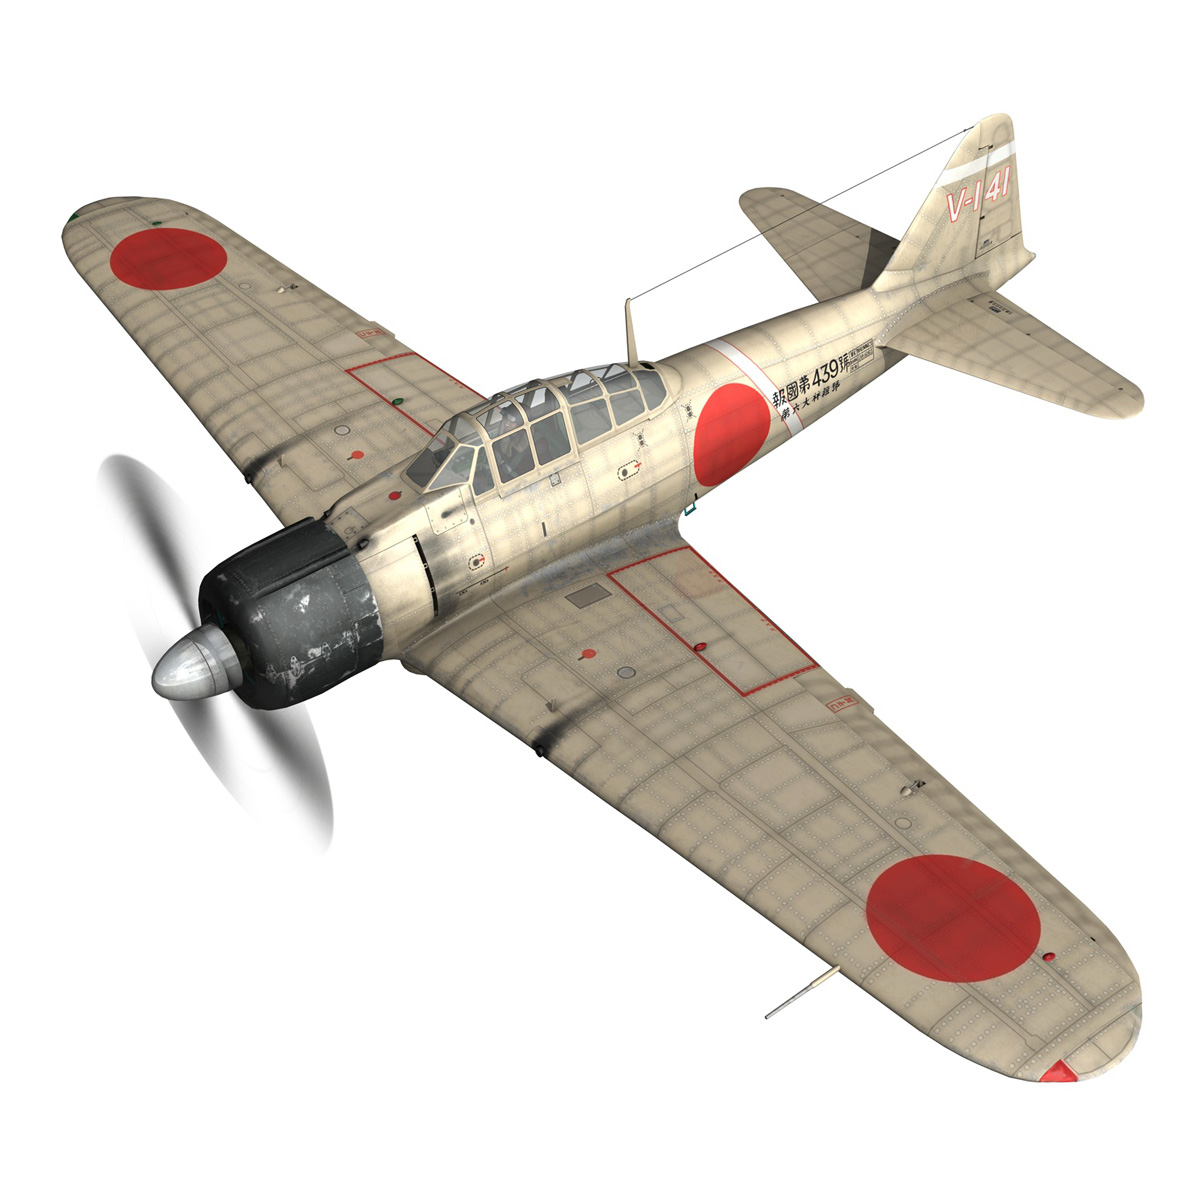 mitsubishi a6m2 zero – tainan air group 3d model fbx lwo obj 272726